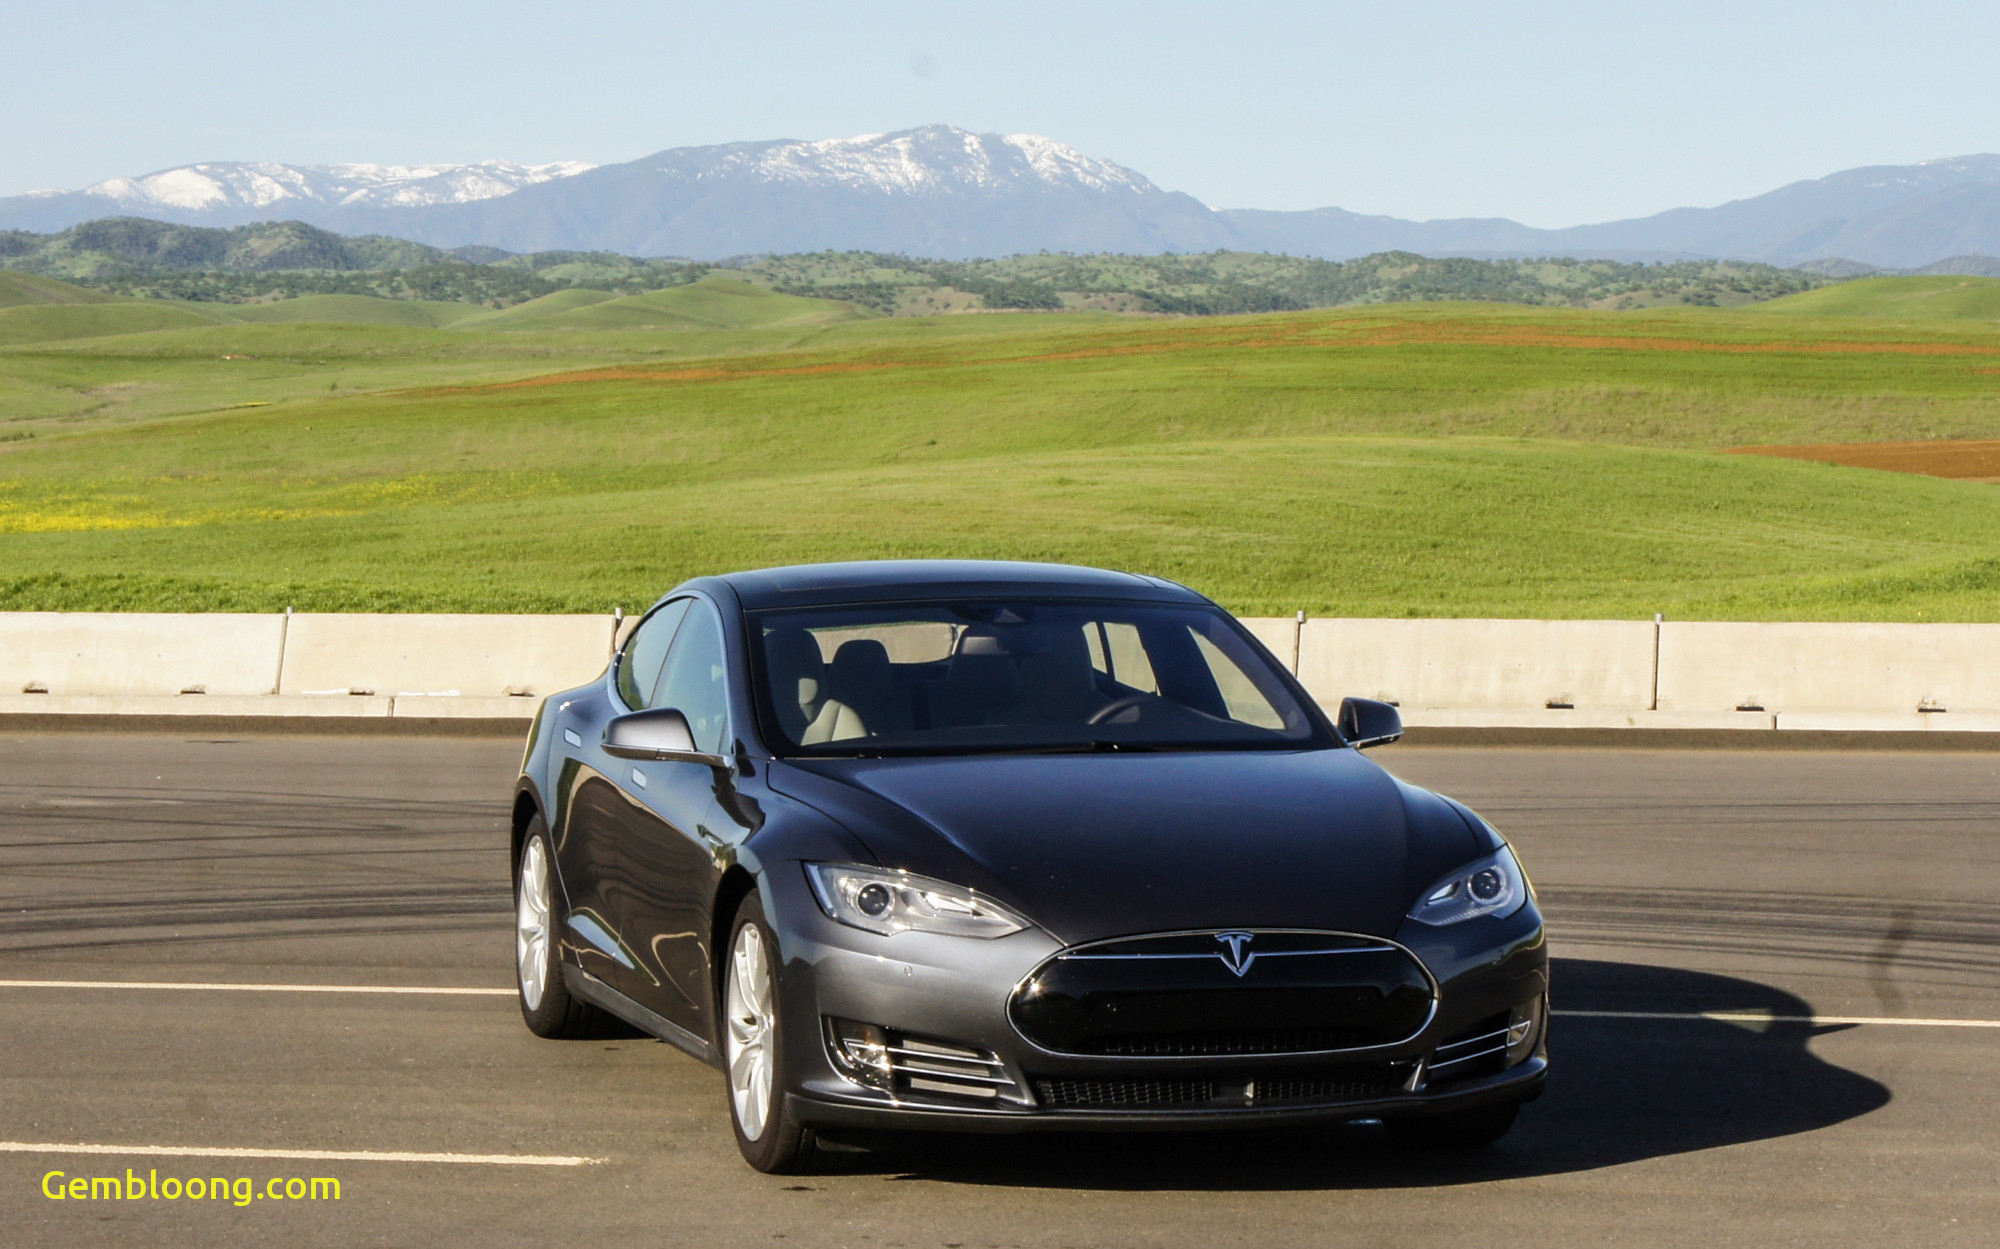 Tesla 90d Range Inspirational Tesla Model S 90d Leads In Electric Range Pictures